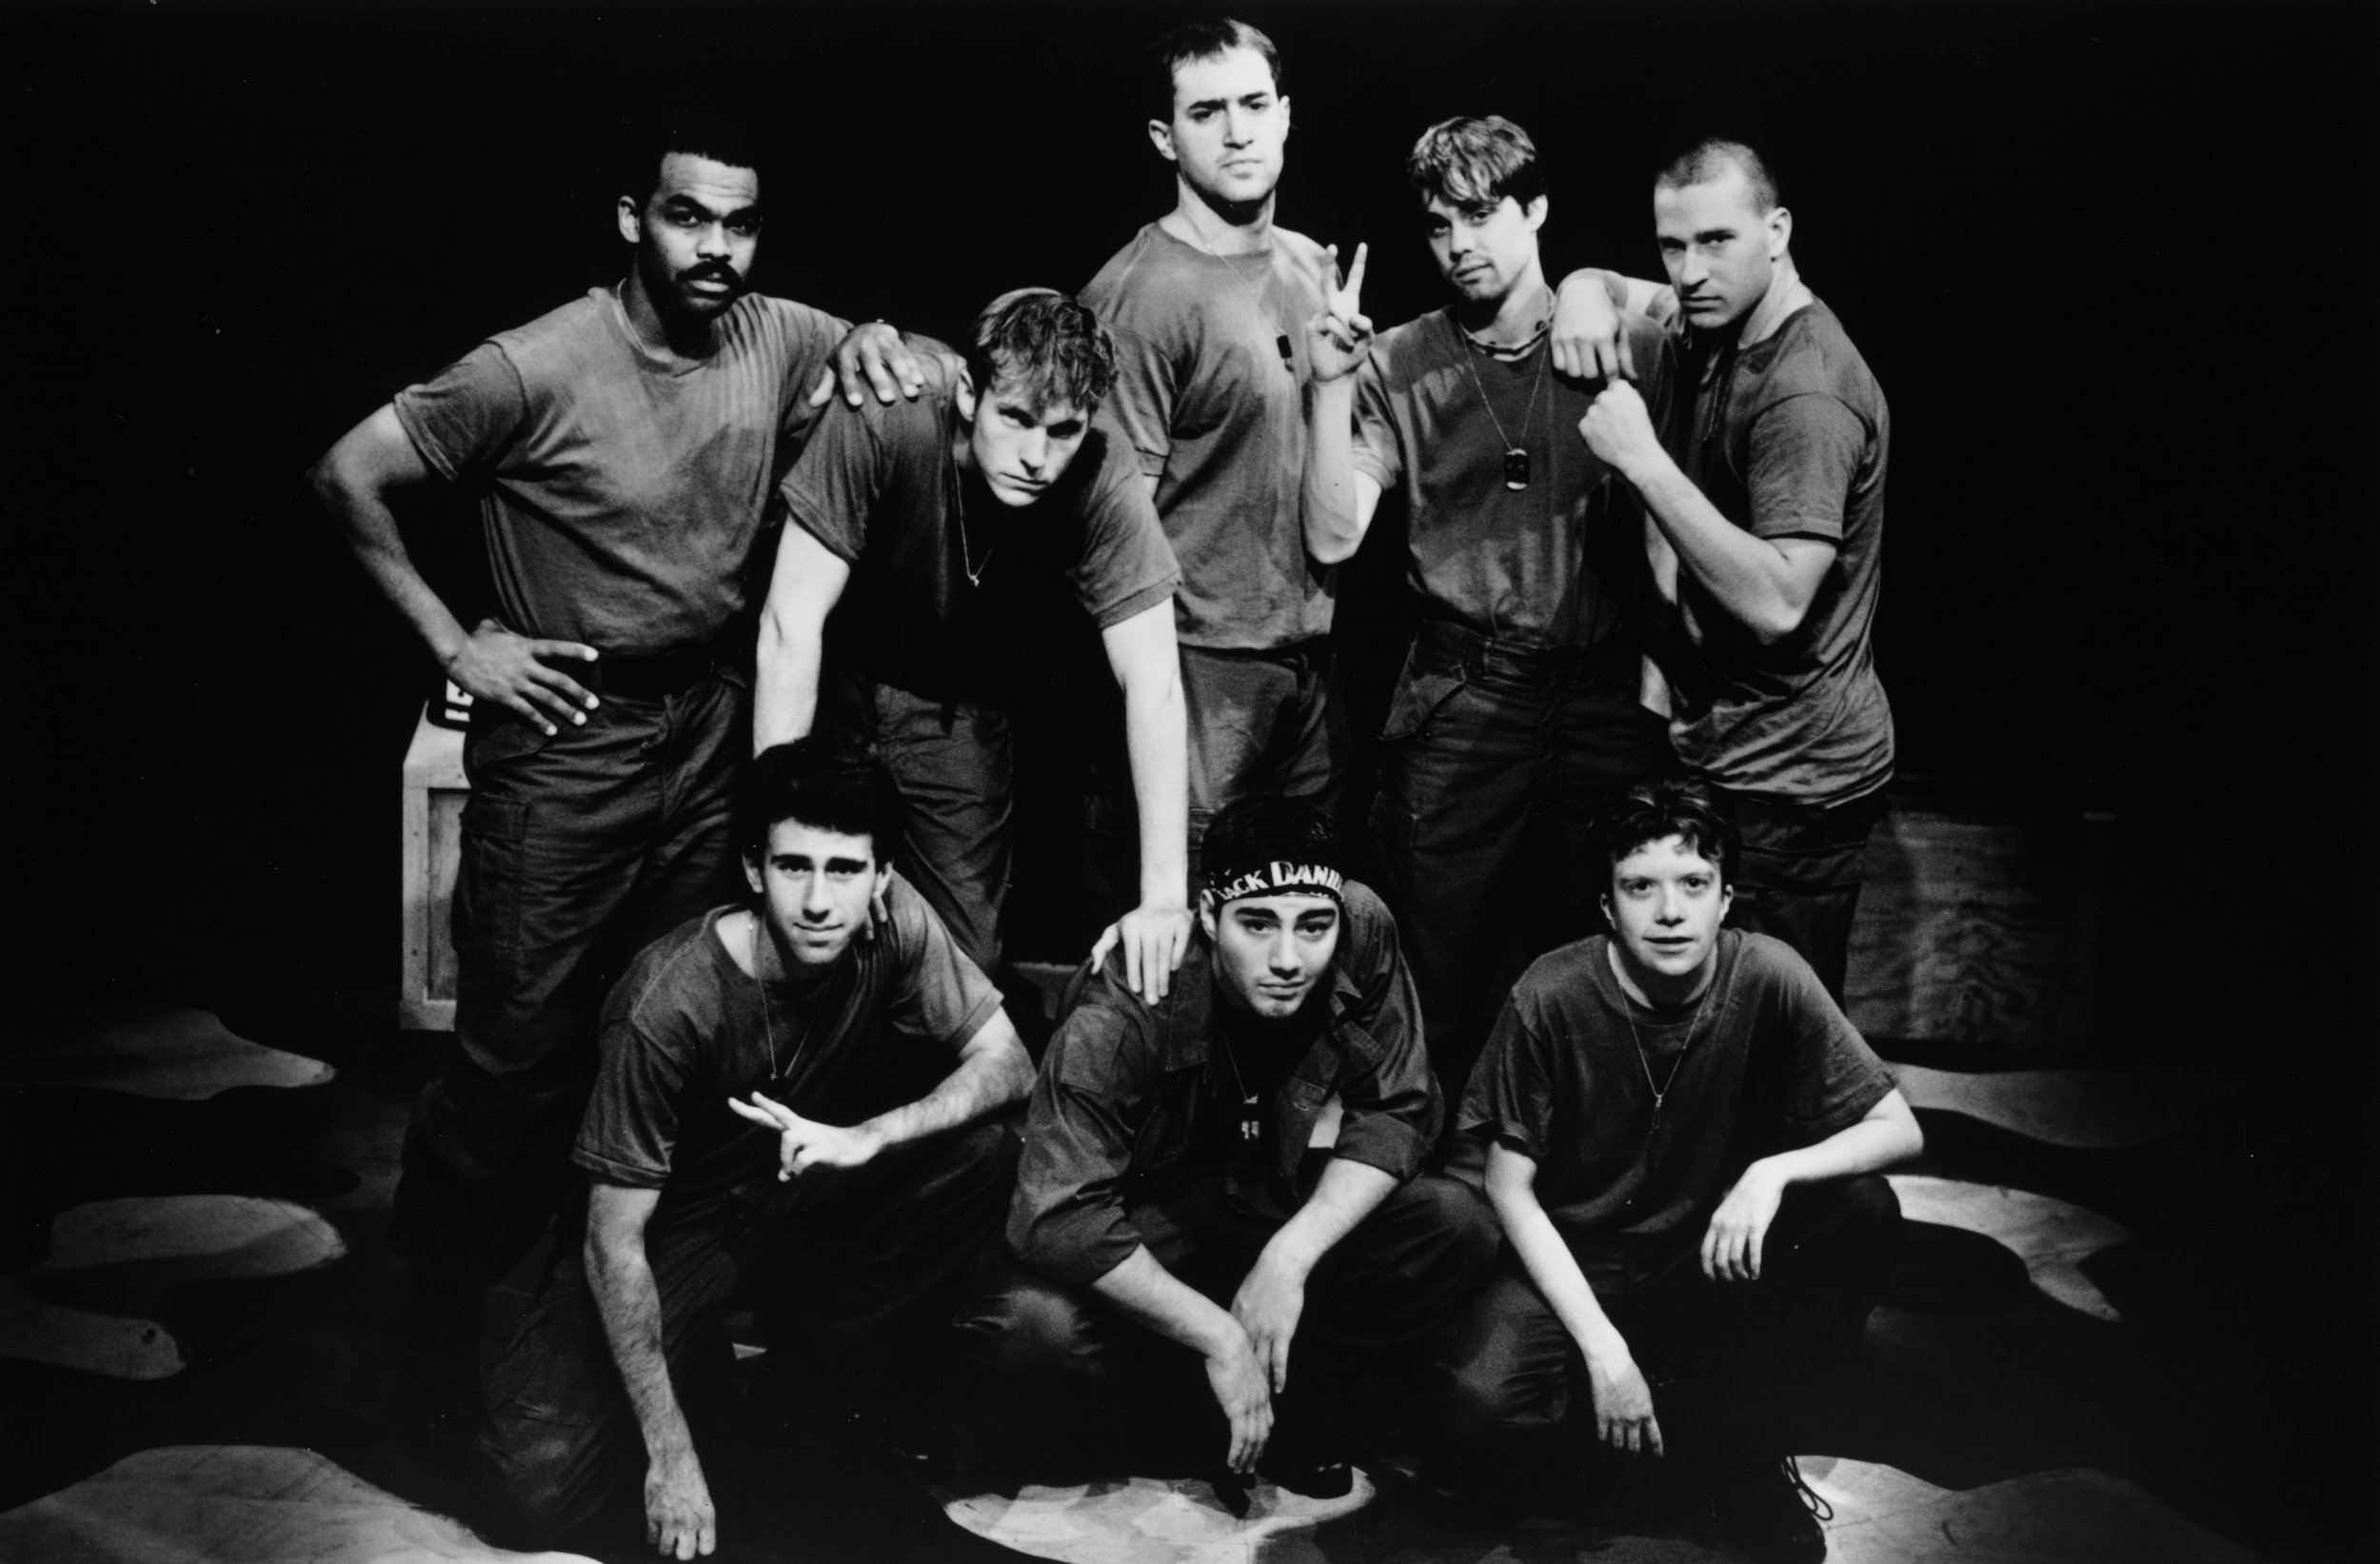 Gene Fereaud (Habu), Craig Bilsky (Professor), William Vogt (Dinky Dau), Scott Donnelly (Little John), Chris Solari (Scooter), Andy Hungerford (Doc), Scott Freeburg (Baby San), and Peter Winfield (Sgt. Williams) in Draw the Sneck Productions'1996 | 1997 productions of  Tracers , directed by John Drouillard.  Photo by Christine Krench.  Photo by Christine Krench.